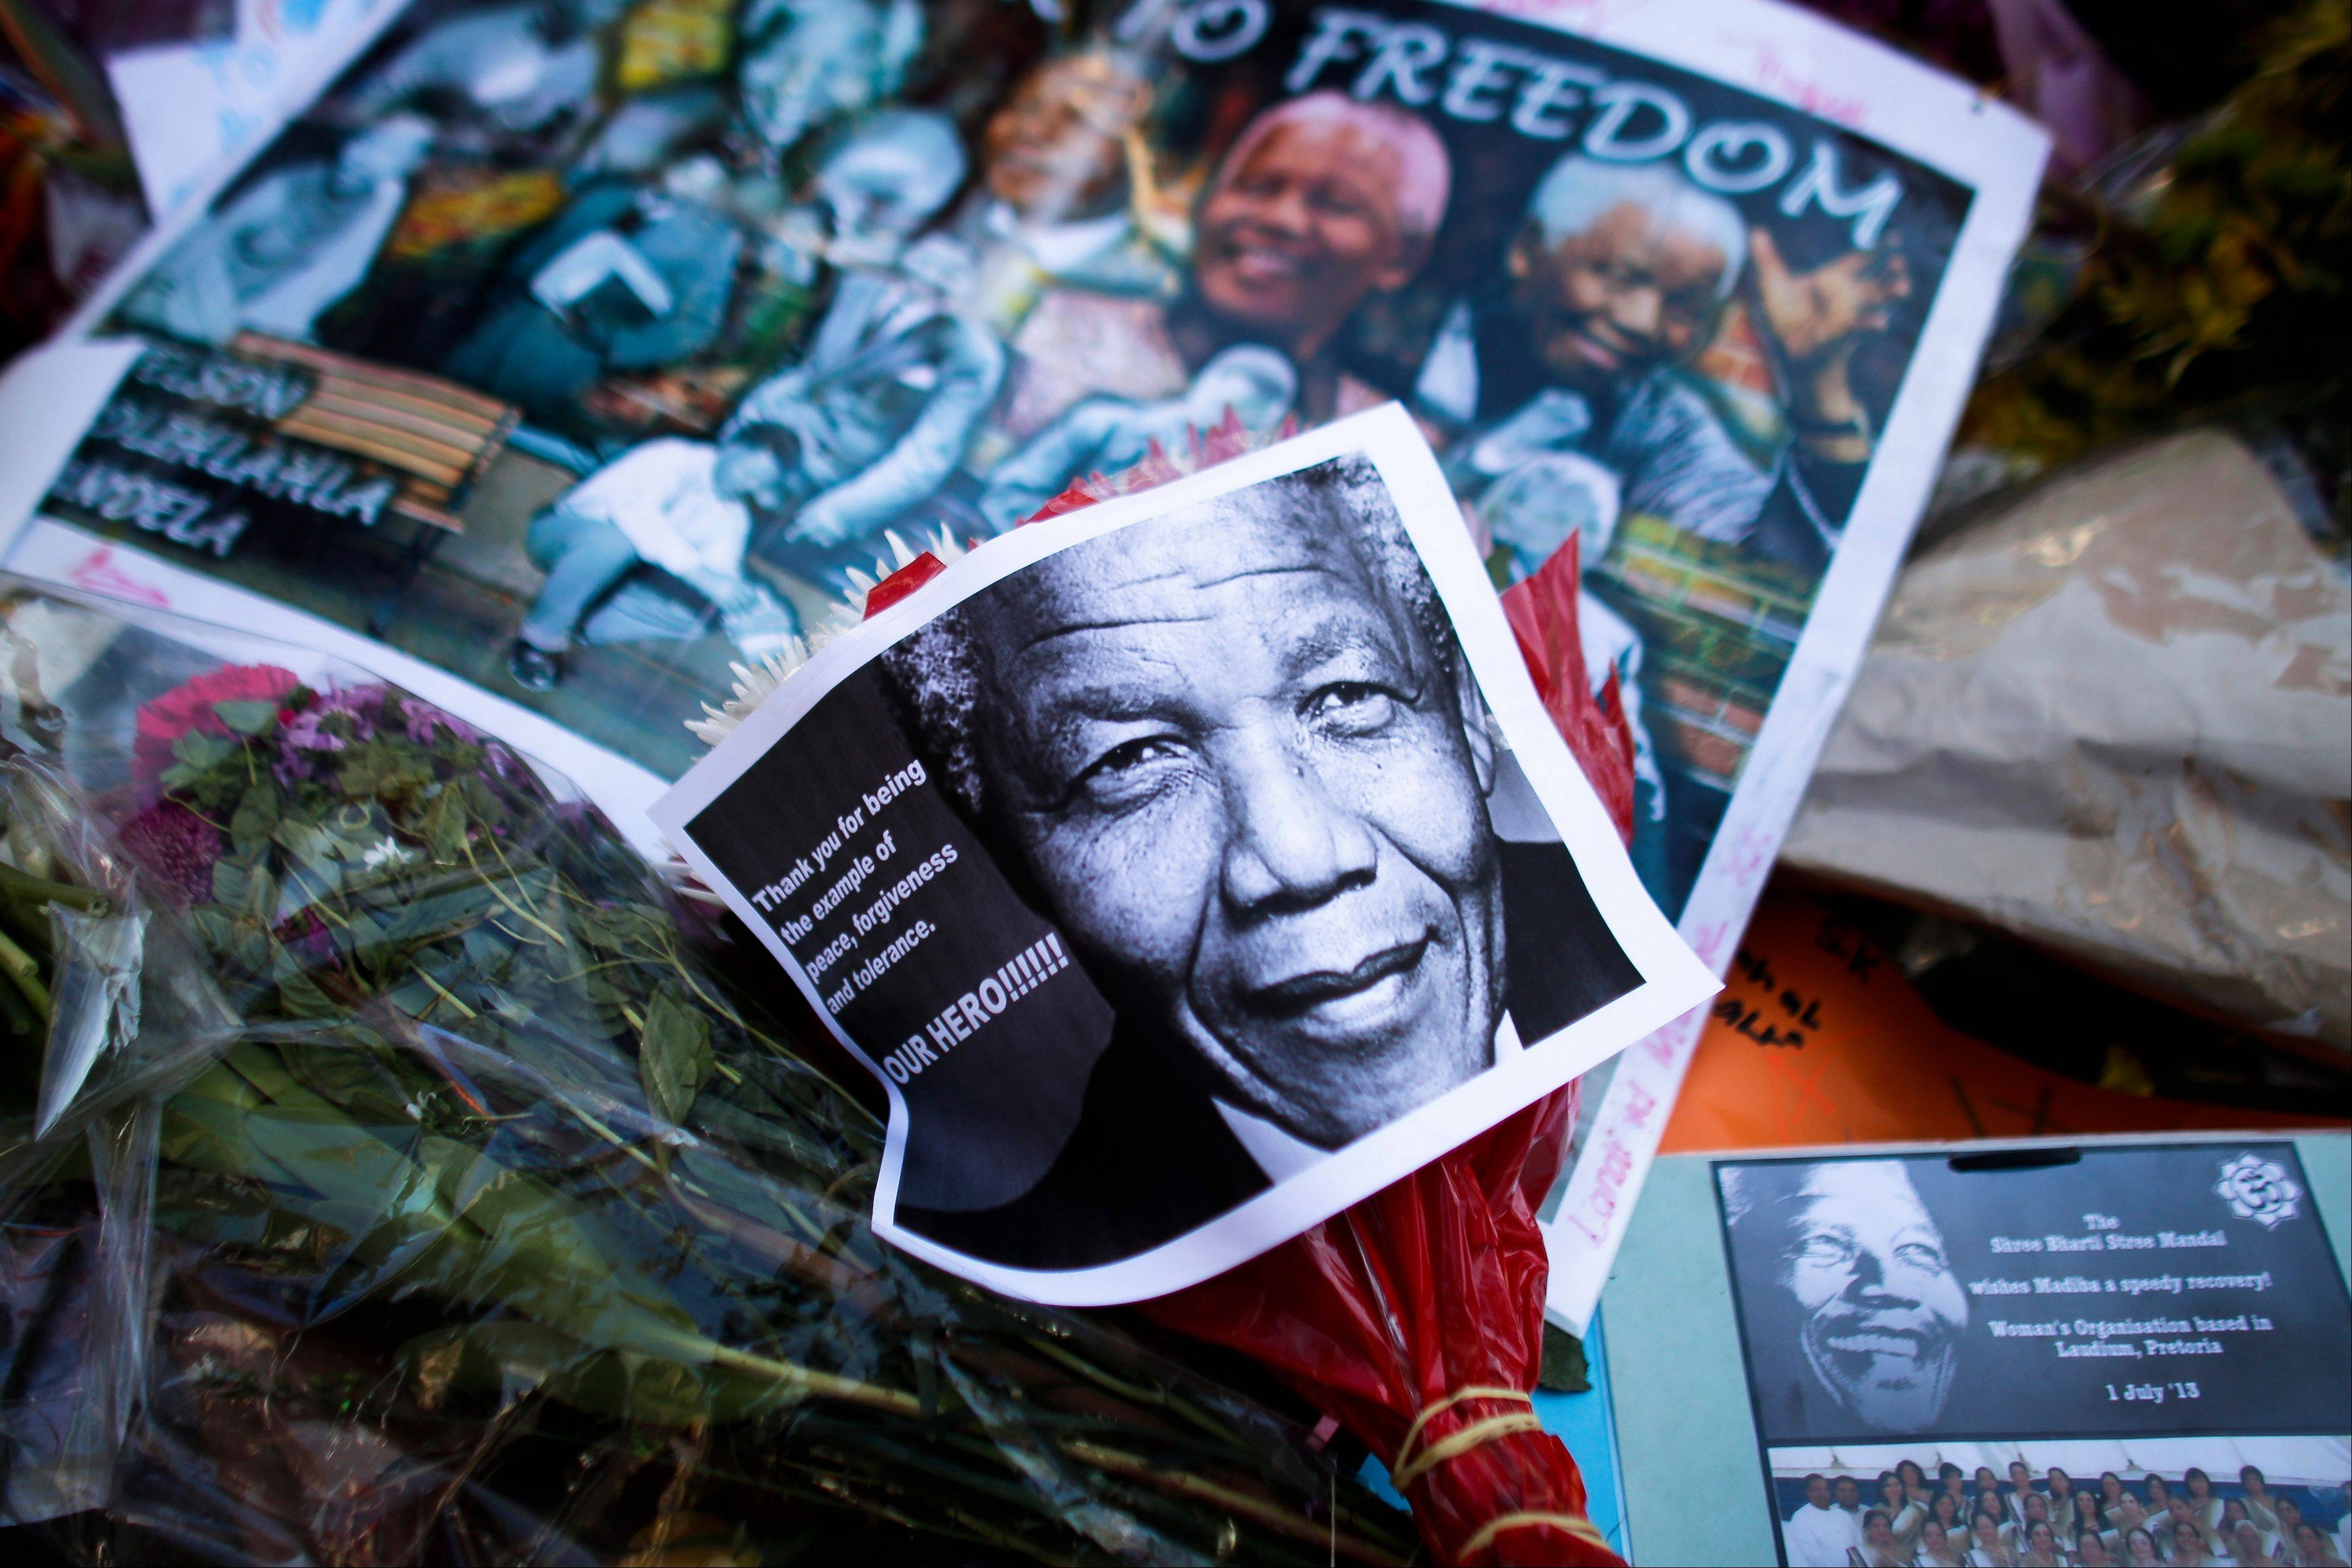 Photos, flowers and good wishes laid in support of former South African President Nelson Mandela, at the entrance of the Mediclinic Heart Hospital where Nelson Mandela is being treated in Pretoria, South Africa, Tuesday, July 2, 2013. Mandela remained in a critical condition on Tuesday.